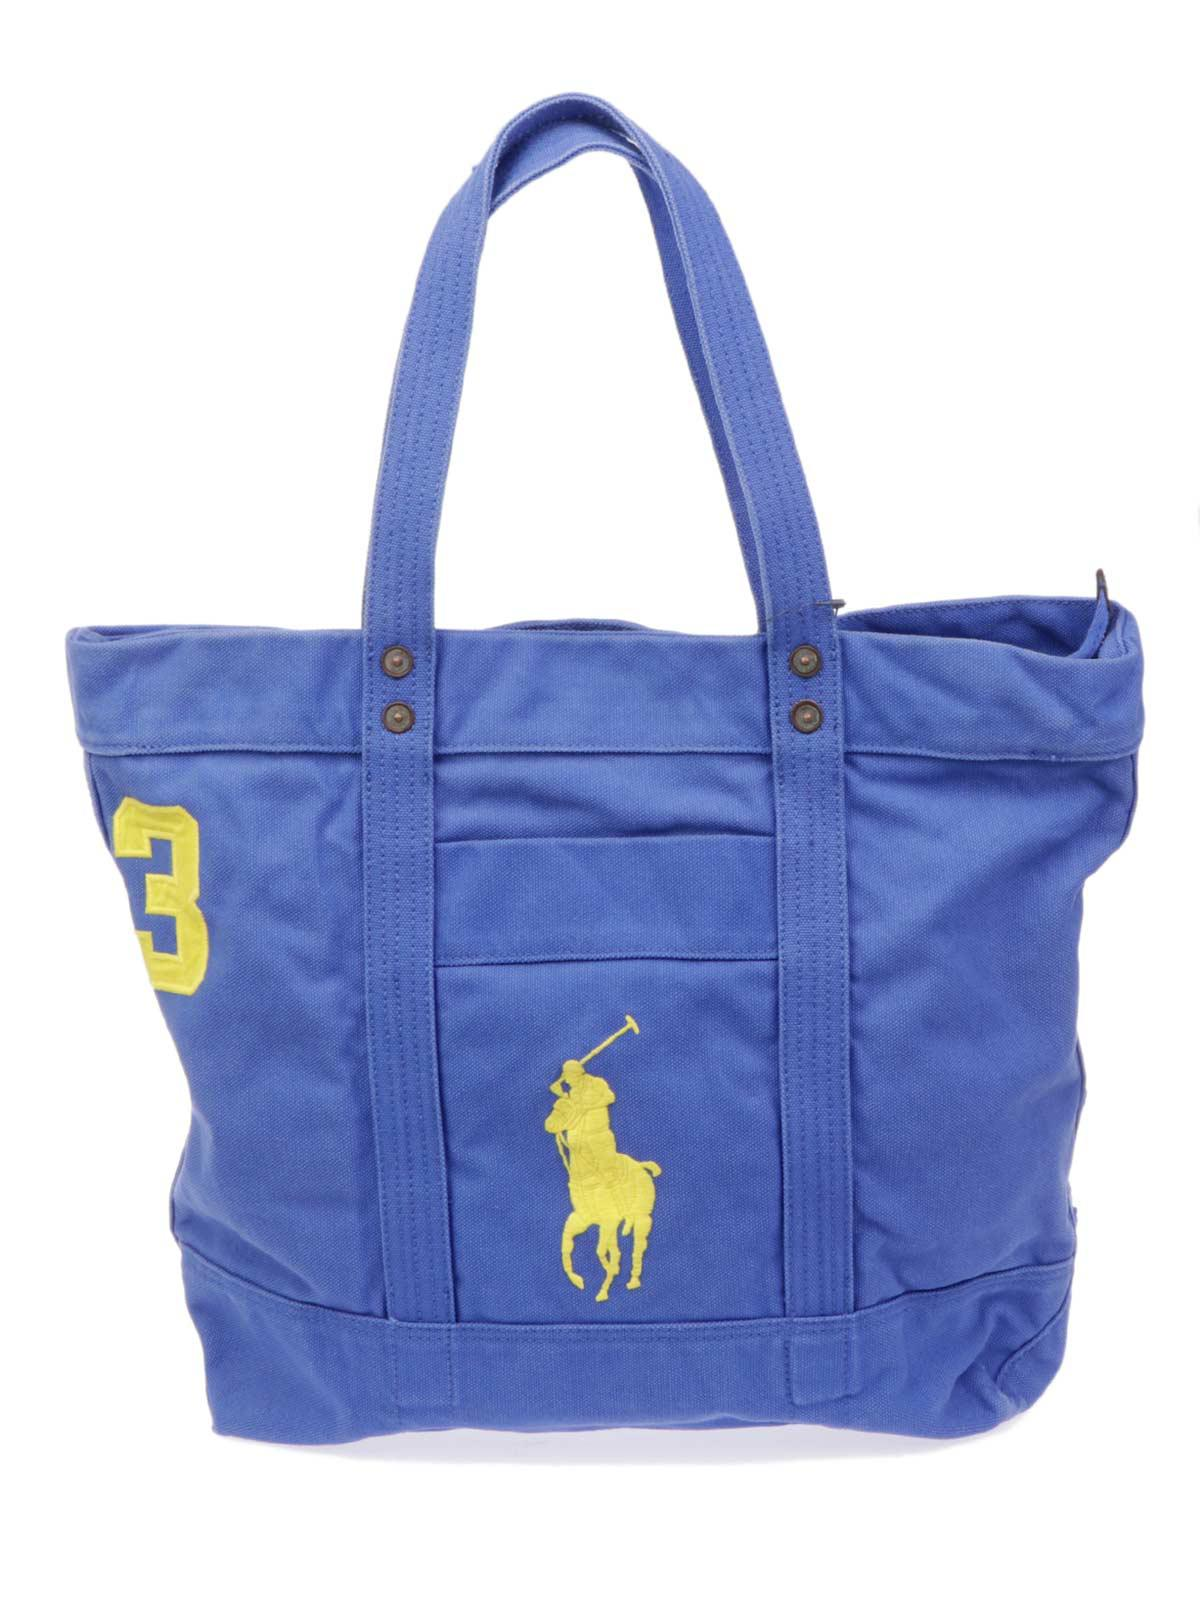 Lyst - Polo Ralph Lauren Big Pp Tote in Blue for Men 3080adc63531e